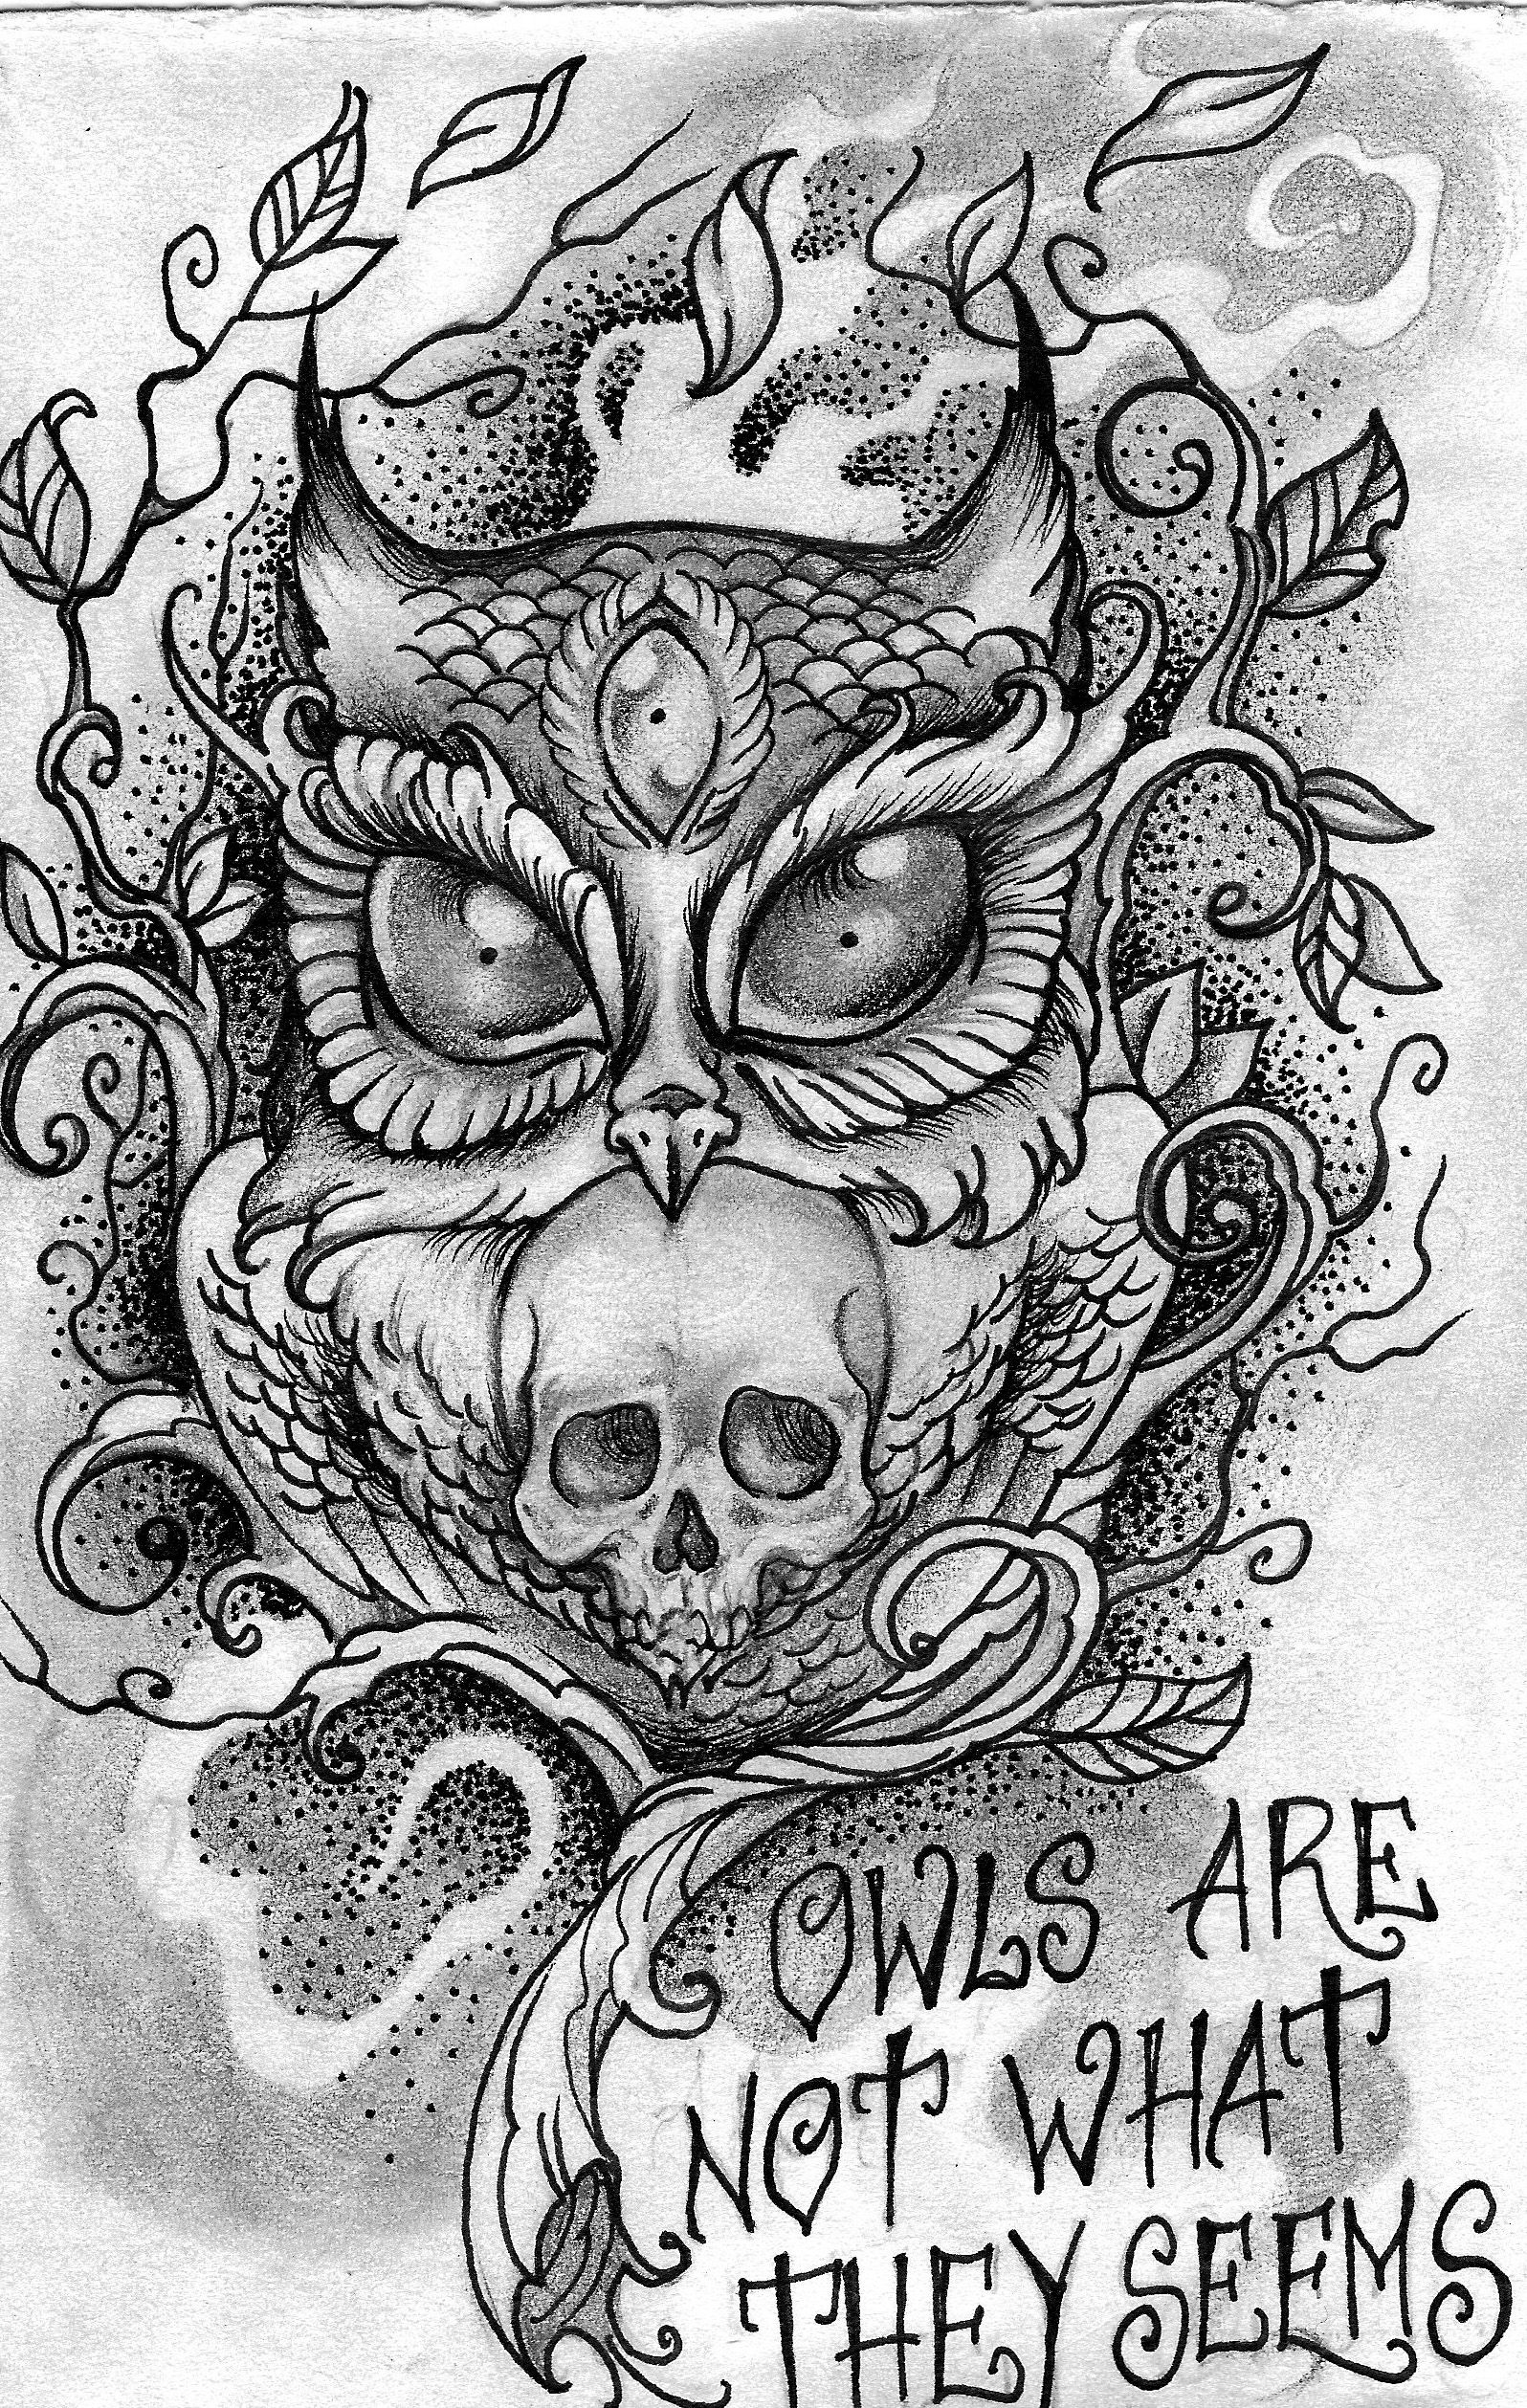 Pin By Maxine Kelley On Coloring In 2020 Owl Coloring Pages Free Adult Coloring Pages Adult Coloring Inspiration